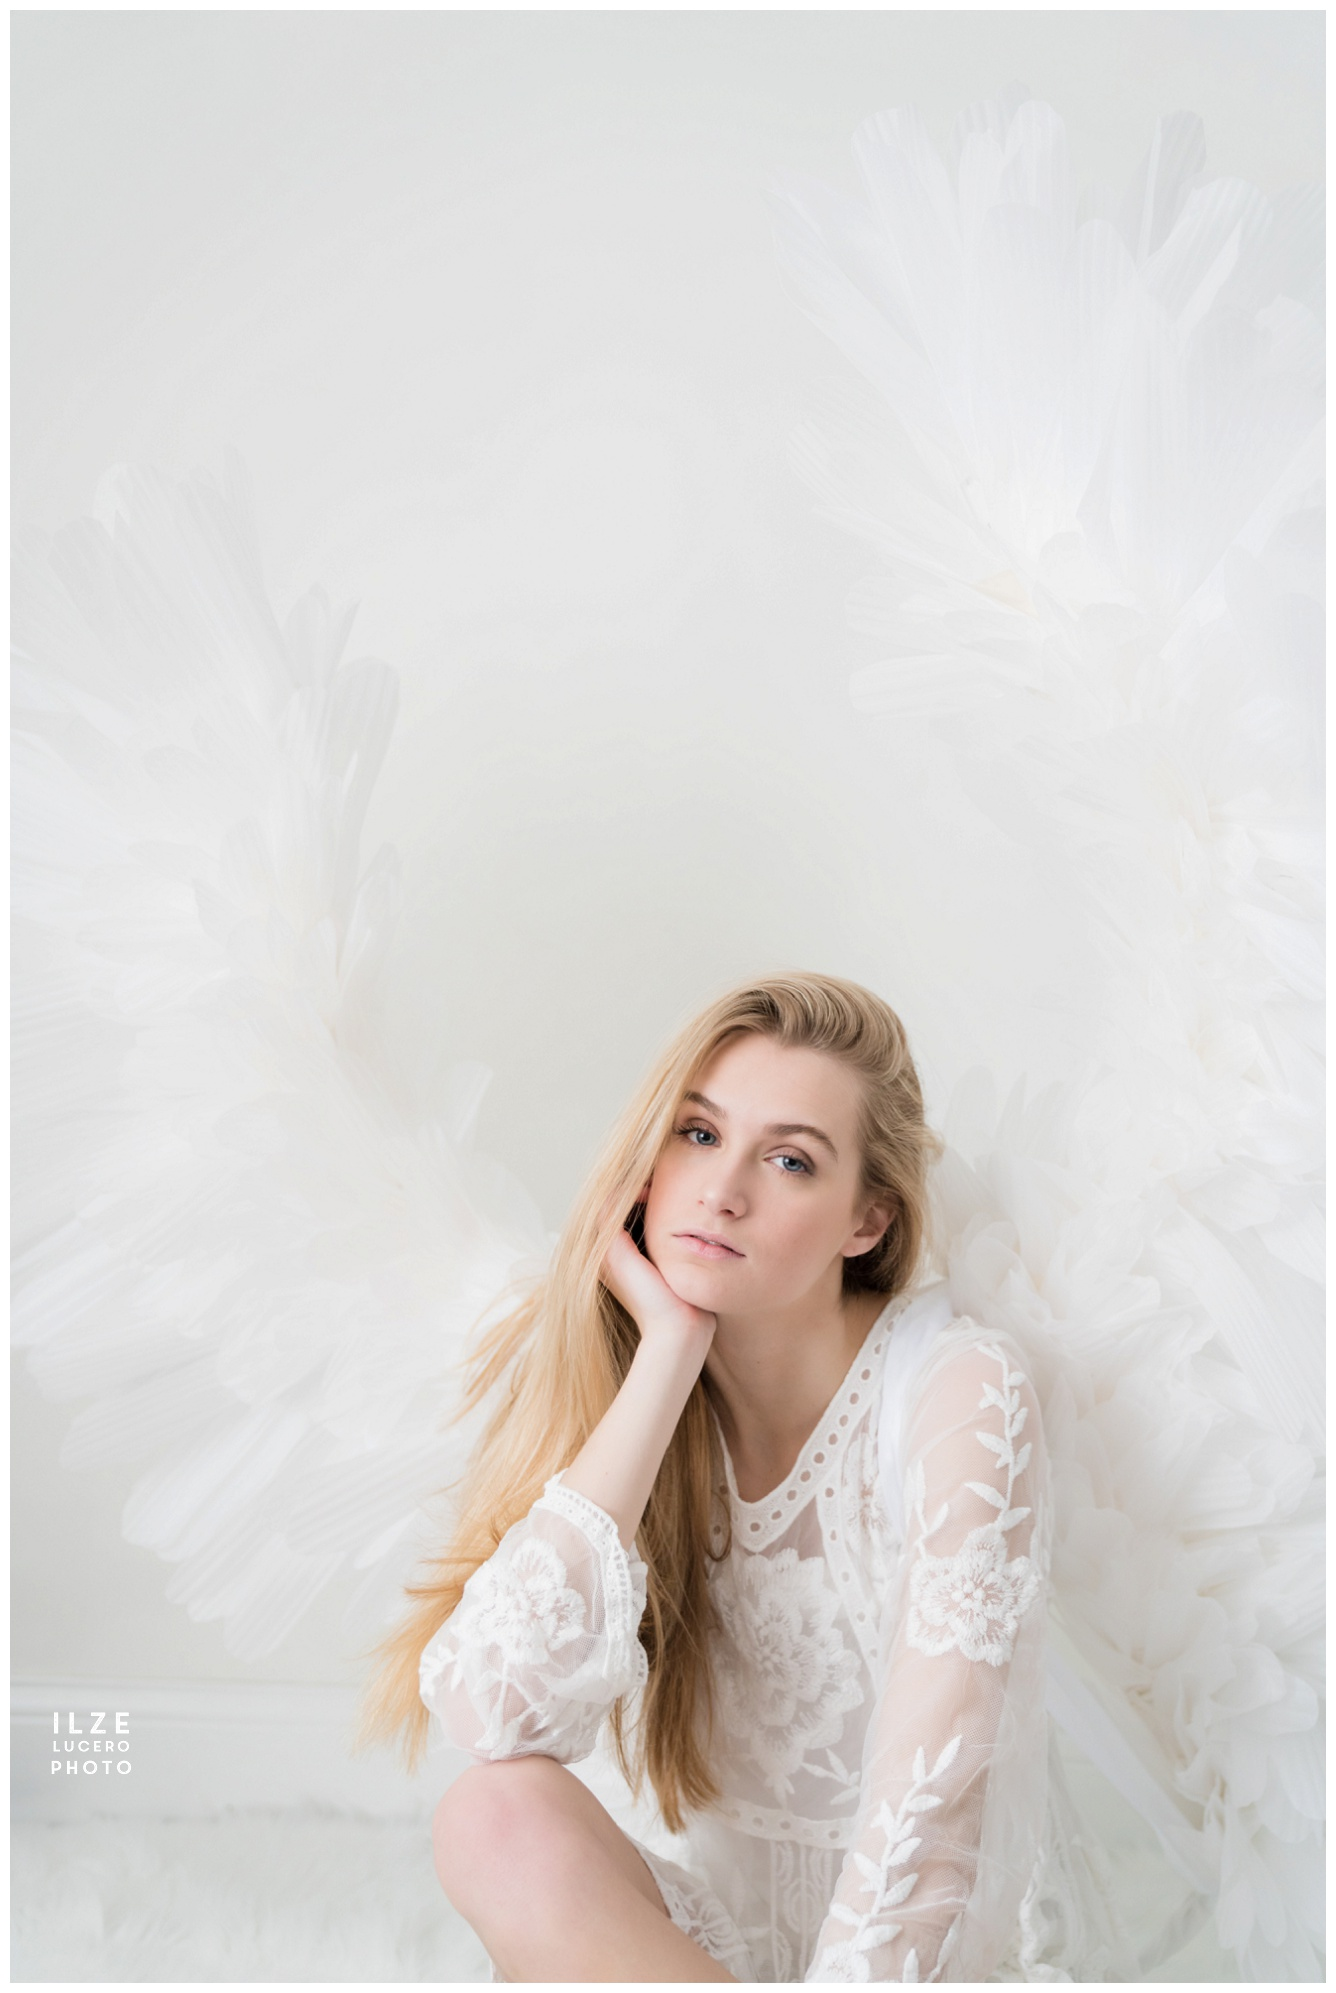 Model photo shoot with large angel wings  cosplay